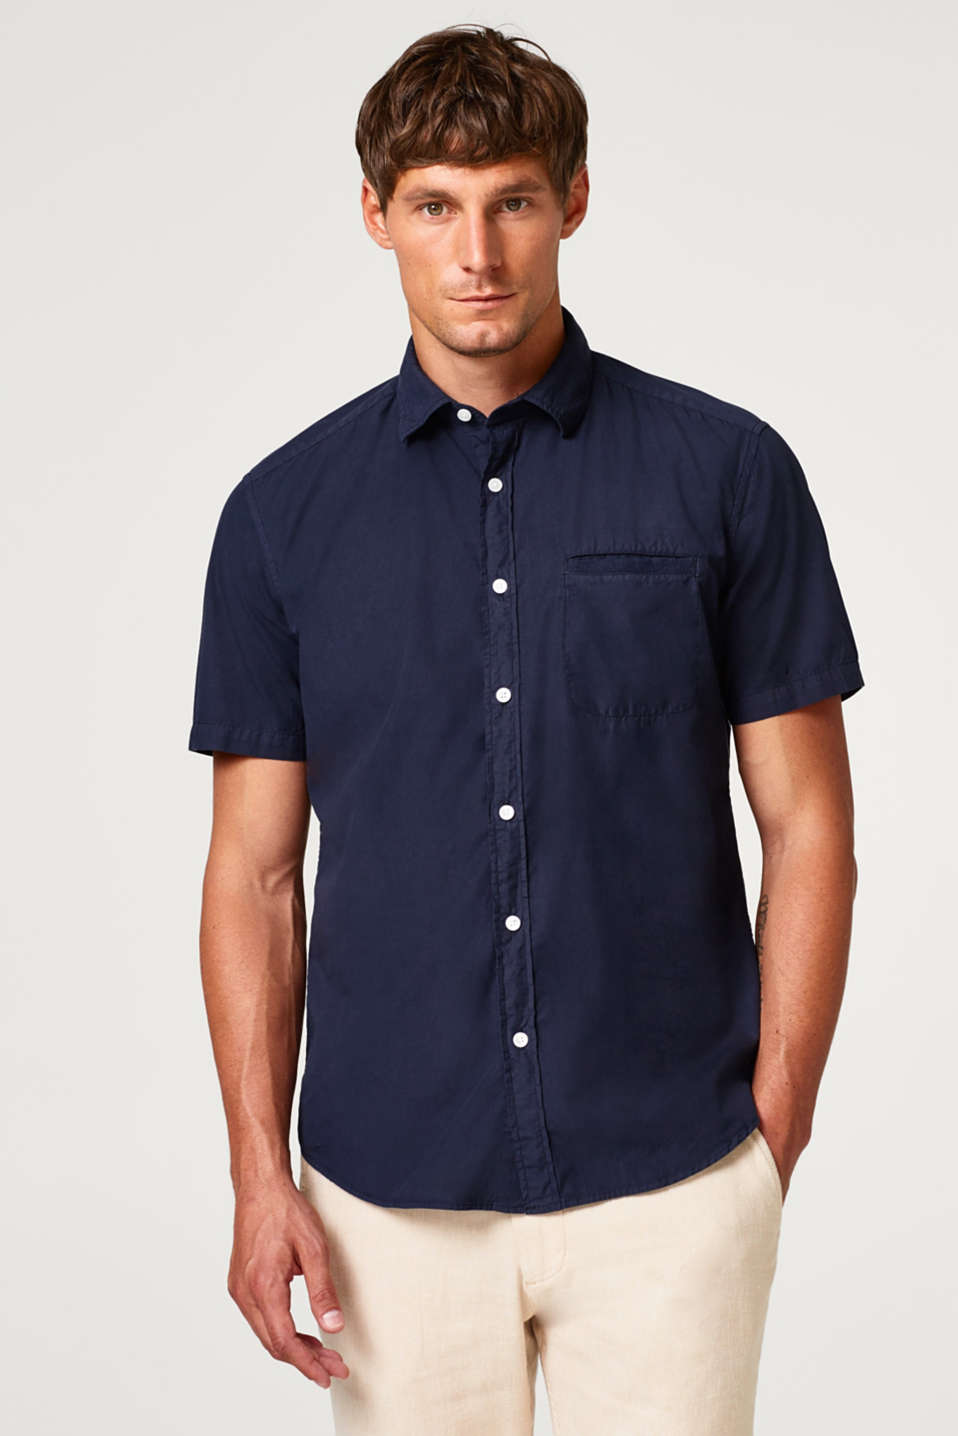 Esprit - Short sleeve shirt with breast pocket, 100% cotton